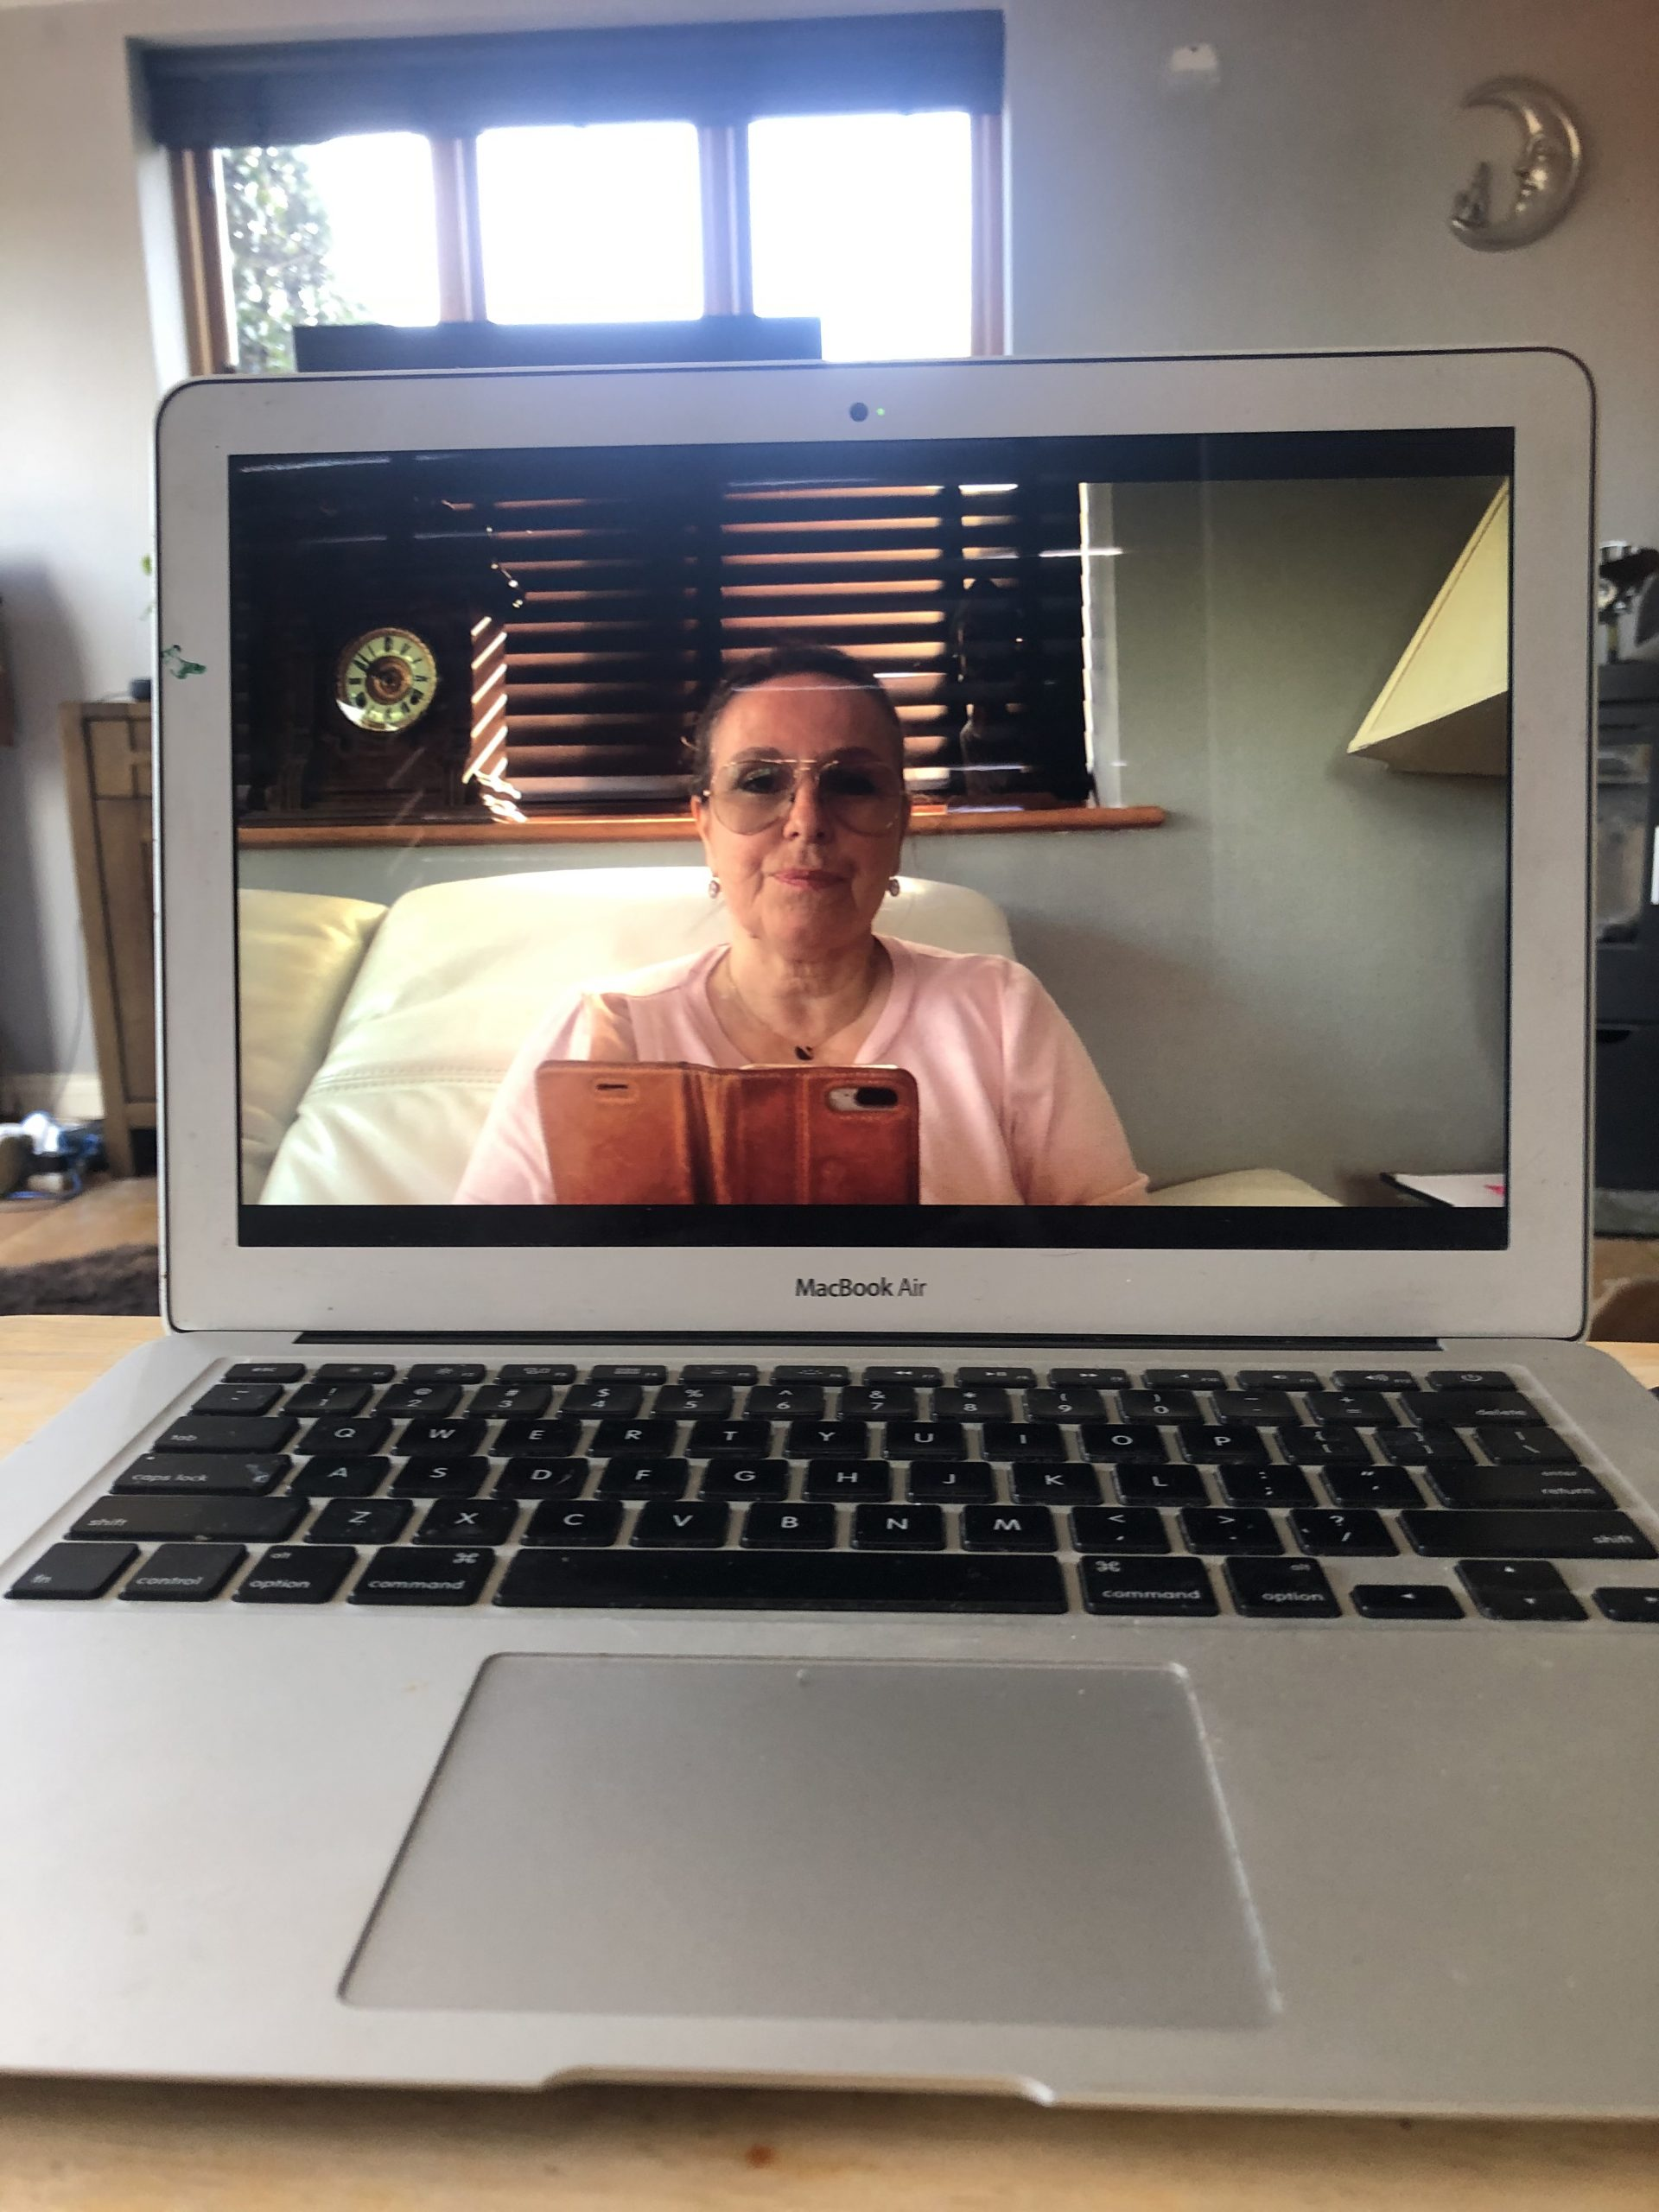 Online counselling with video conferencing